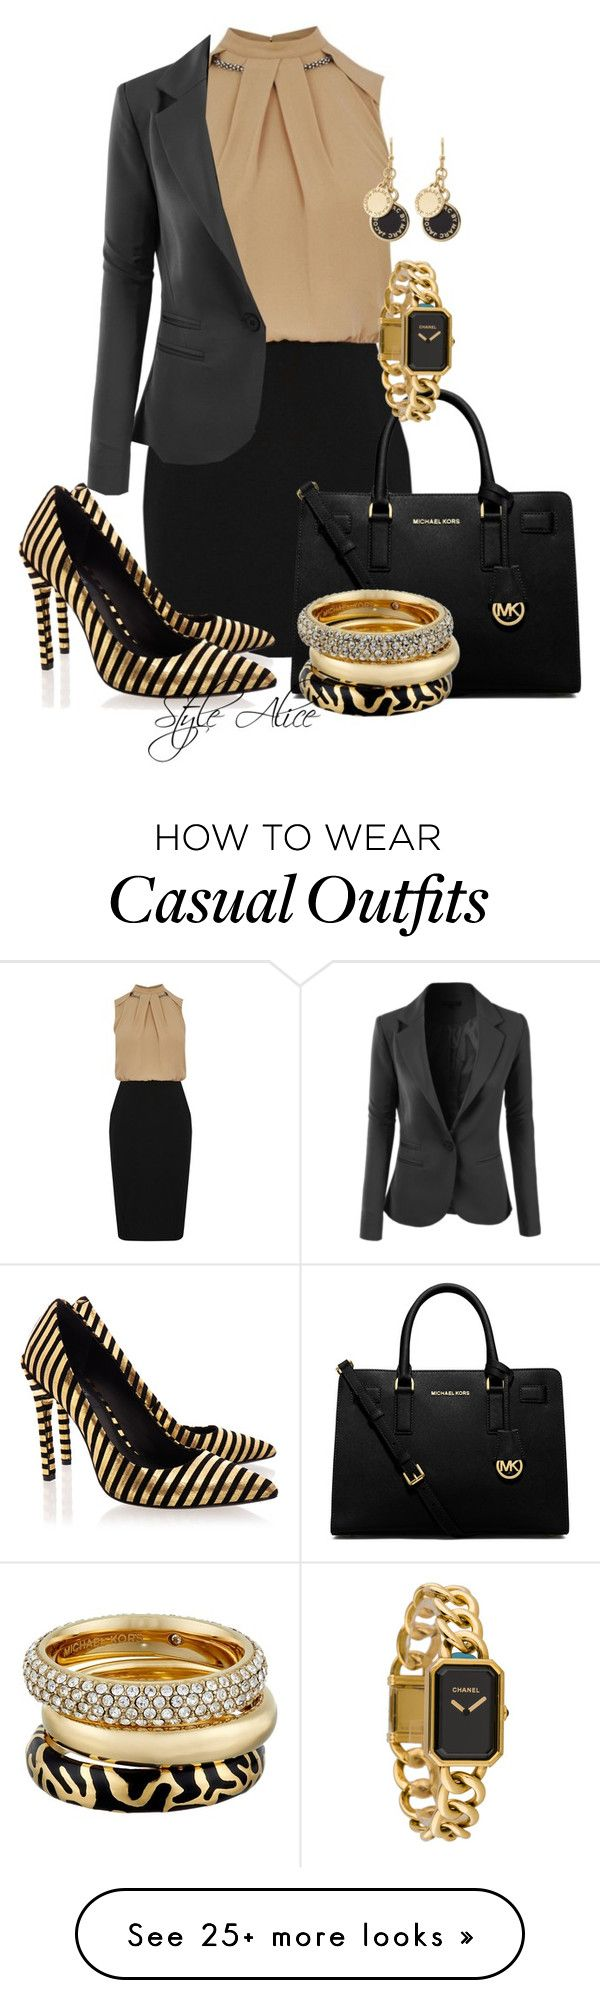 """""""Casual"""" by alice-fortuna on Polyvore featuring Oasis, LE3NO, MICHAEL Michael Kors, Rachel Zoe, Michael Kors, Marc by Marc Jacobs and Chanel"""